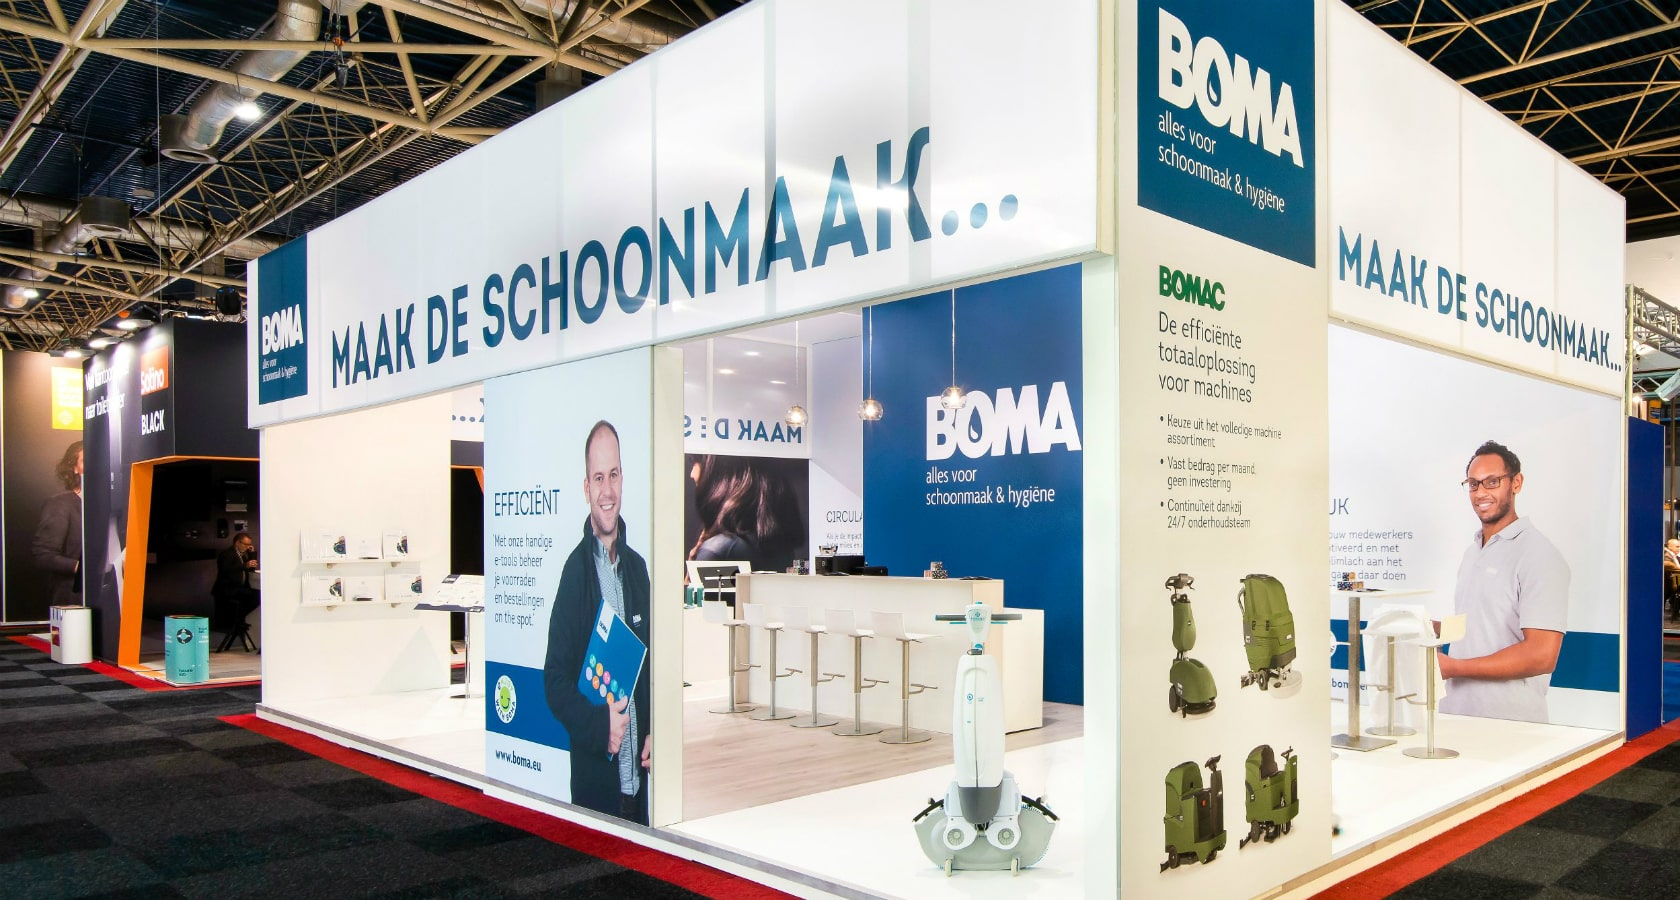 Alline standbouw - referentie traditionele bouw - Boma 2018 header